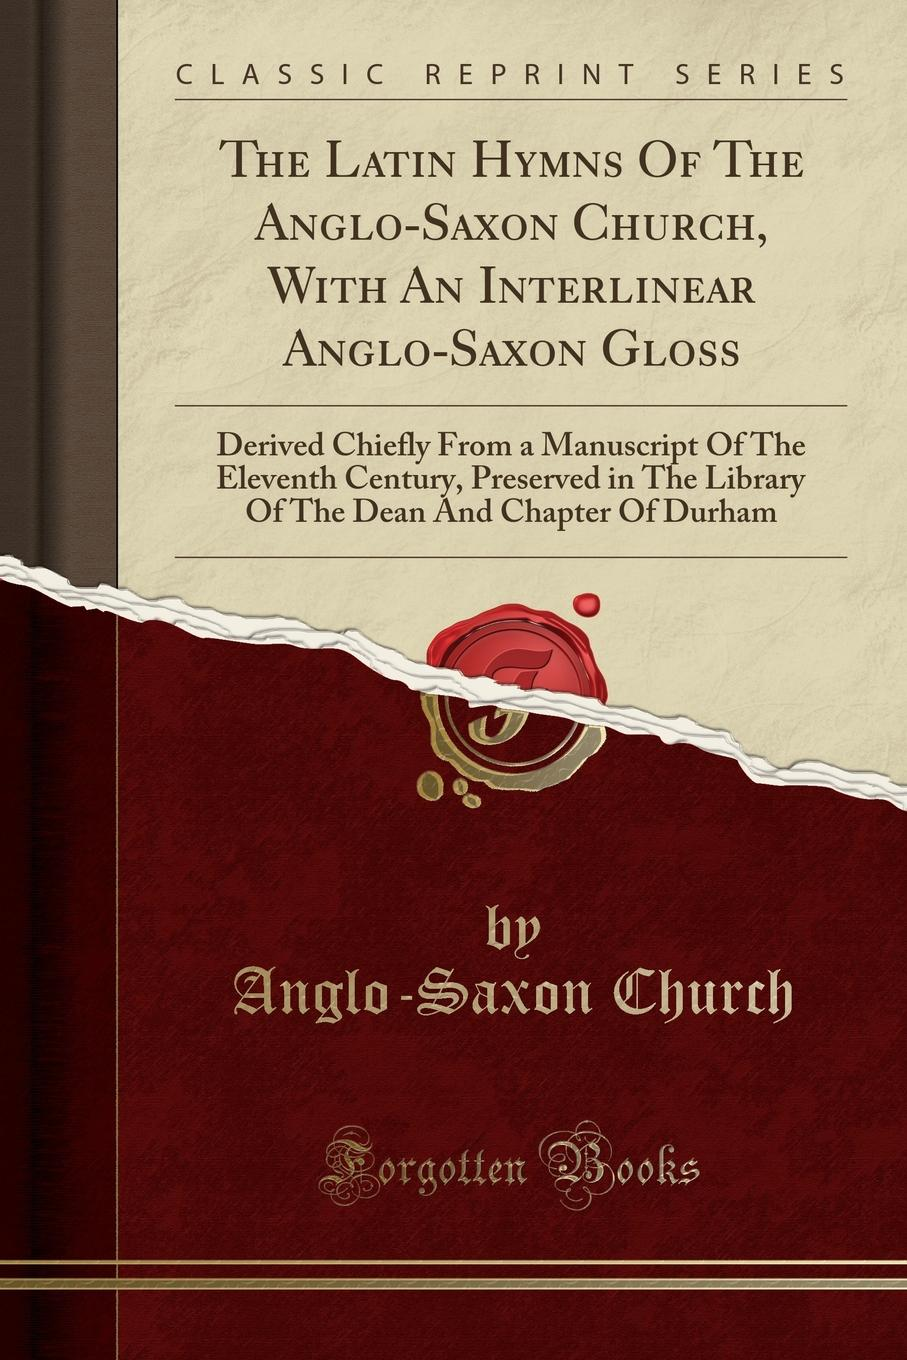 Anglo-Saxon Church The Latin Hymns Of The Anglo-Saxon Church, With An Interlinear Anglo-Saxon Gloss. Derived Chiefly From a Manuscript Of The Eleventh Century, Preserved in The Library Of The Dean And Chapter Of Durham (Classic Reprint) henry sweet an anglo saxon reader in prose and verse